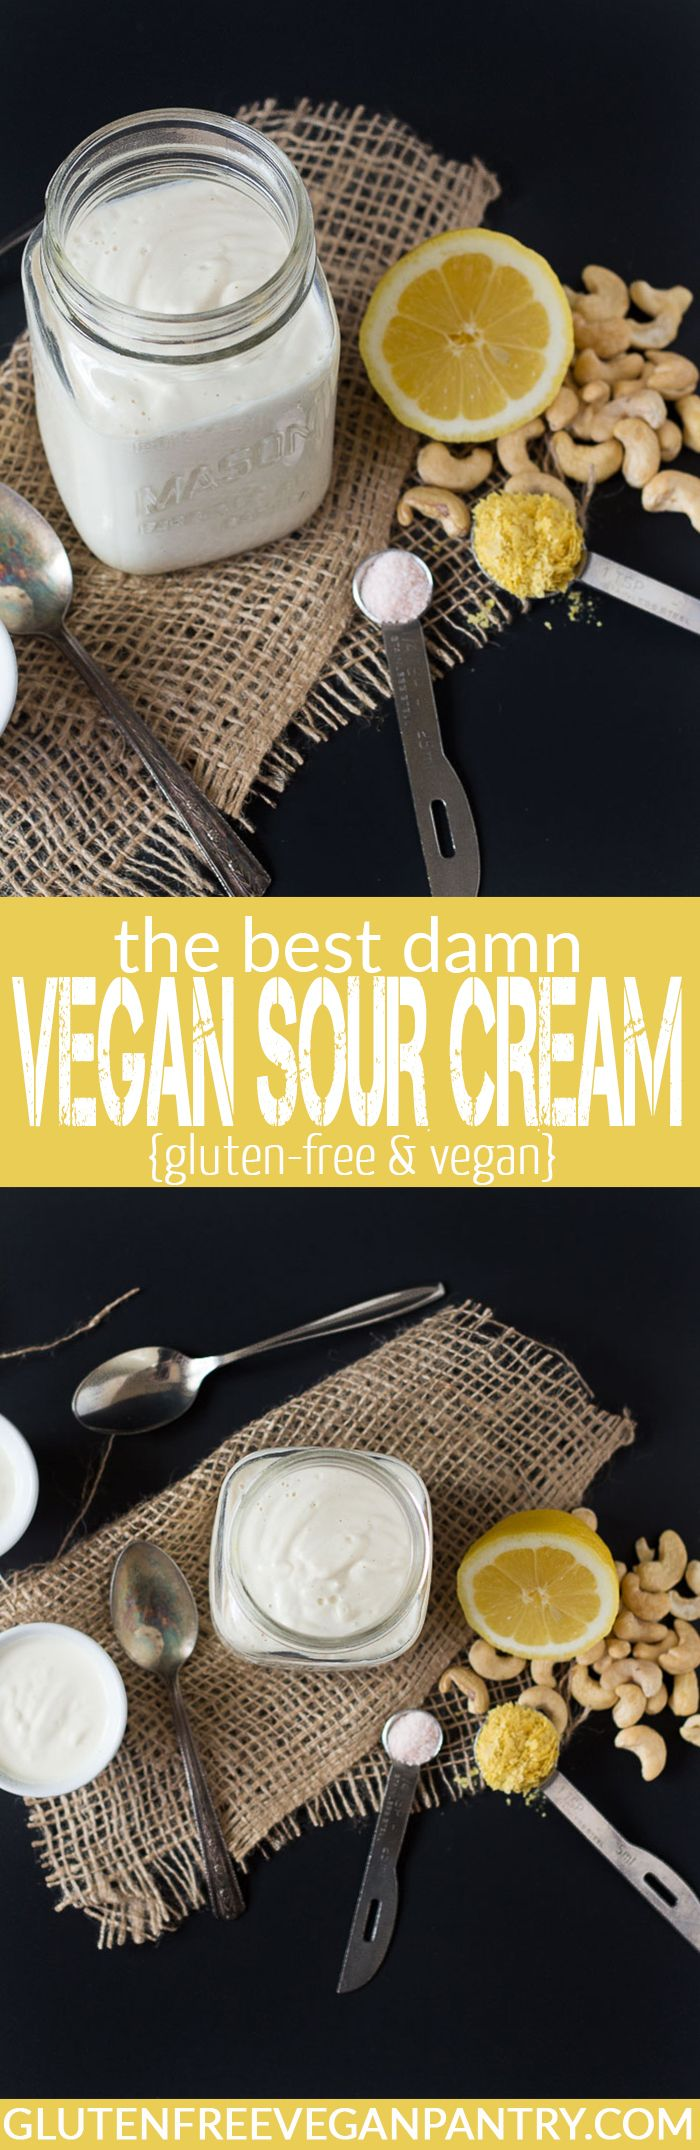 The Best Damn Vegan Sour Cream - 5 ingredients, 10 minutes, pure deliciousness